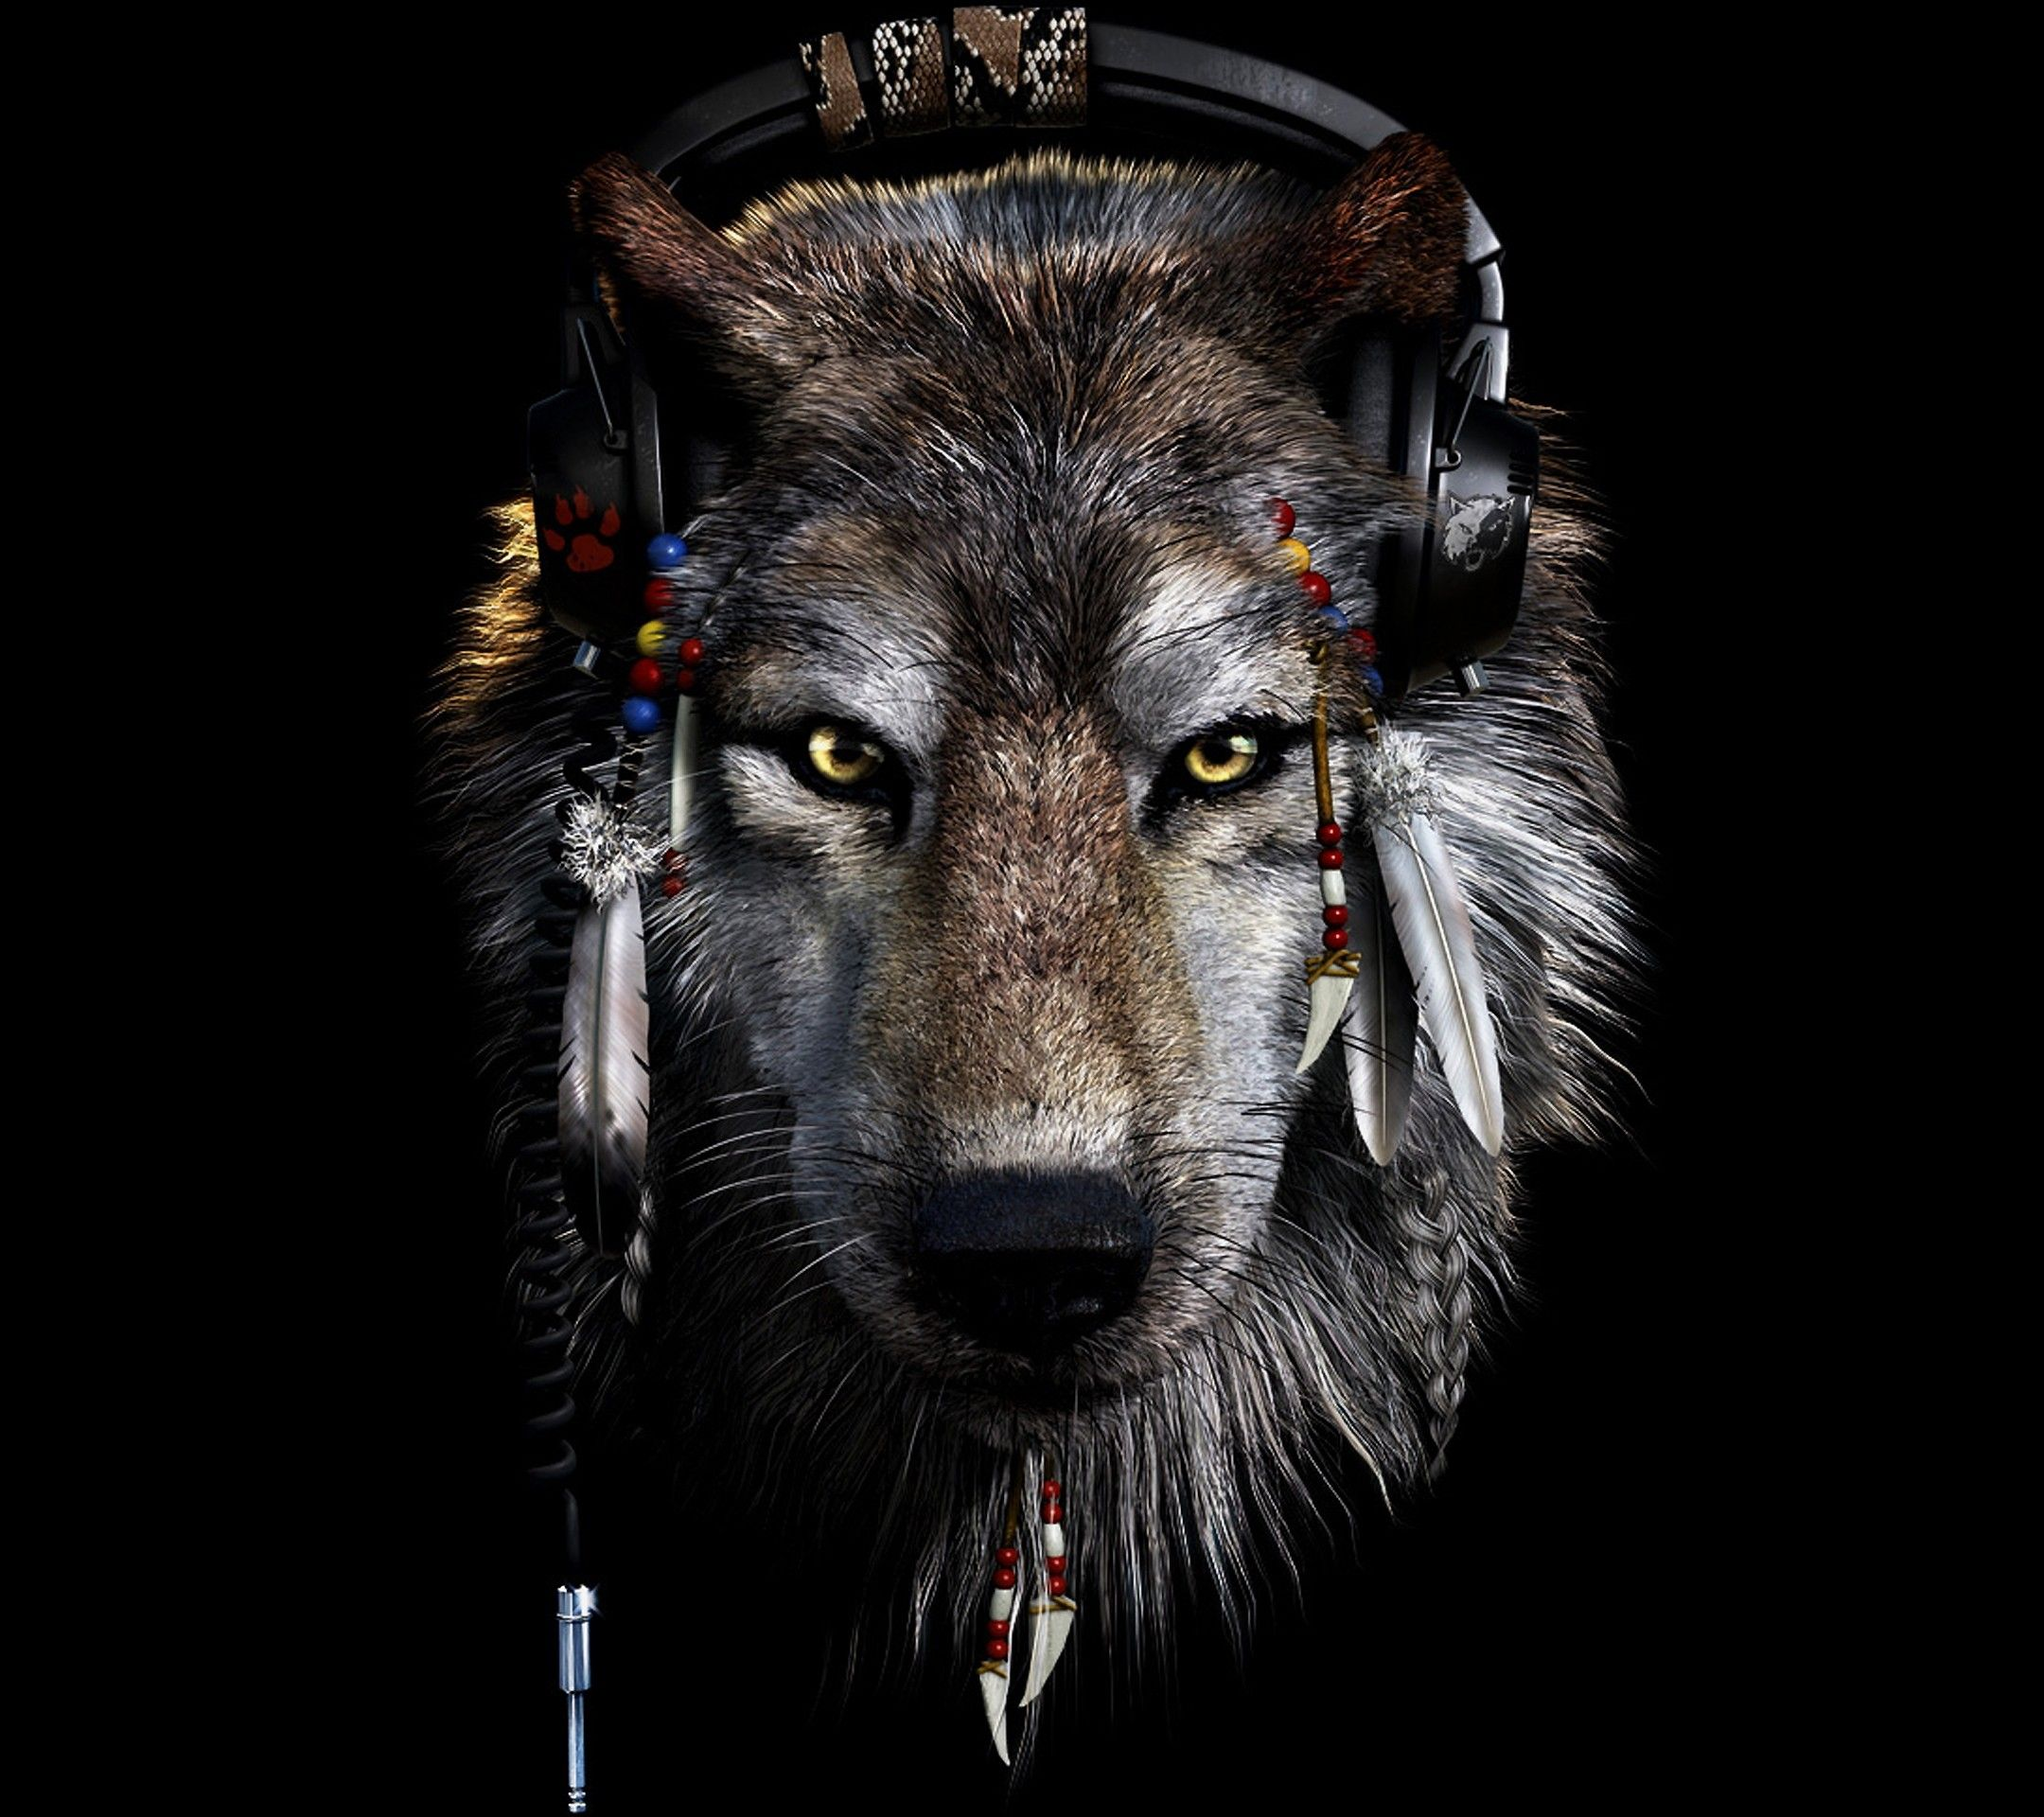 Wolf Iphone Wallpaper: Lone Wolf HD Wallpapers